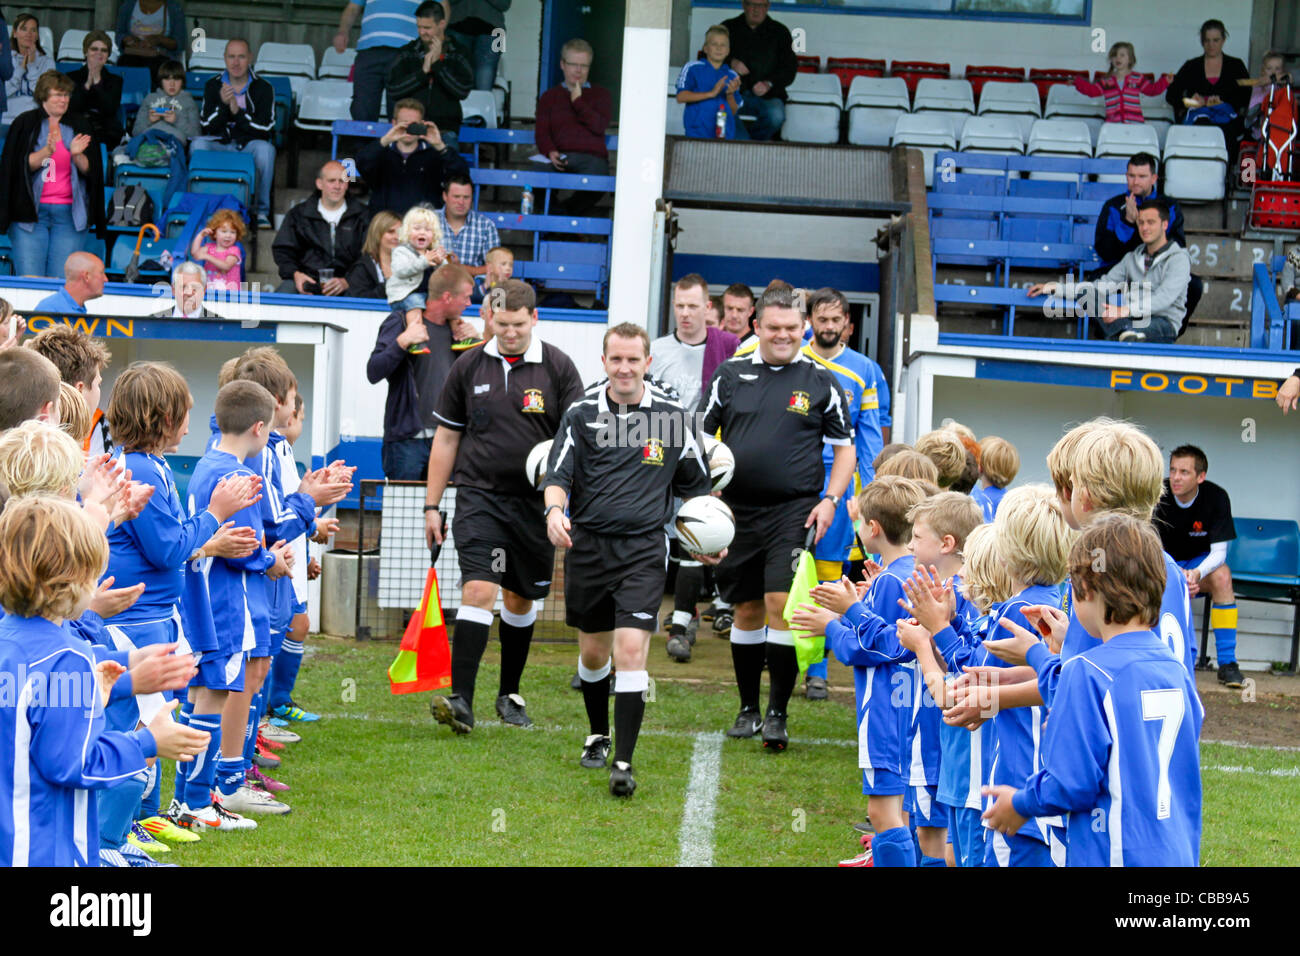 Referees and Teams walk out to applause from young footballers - Stock Image